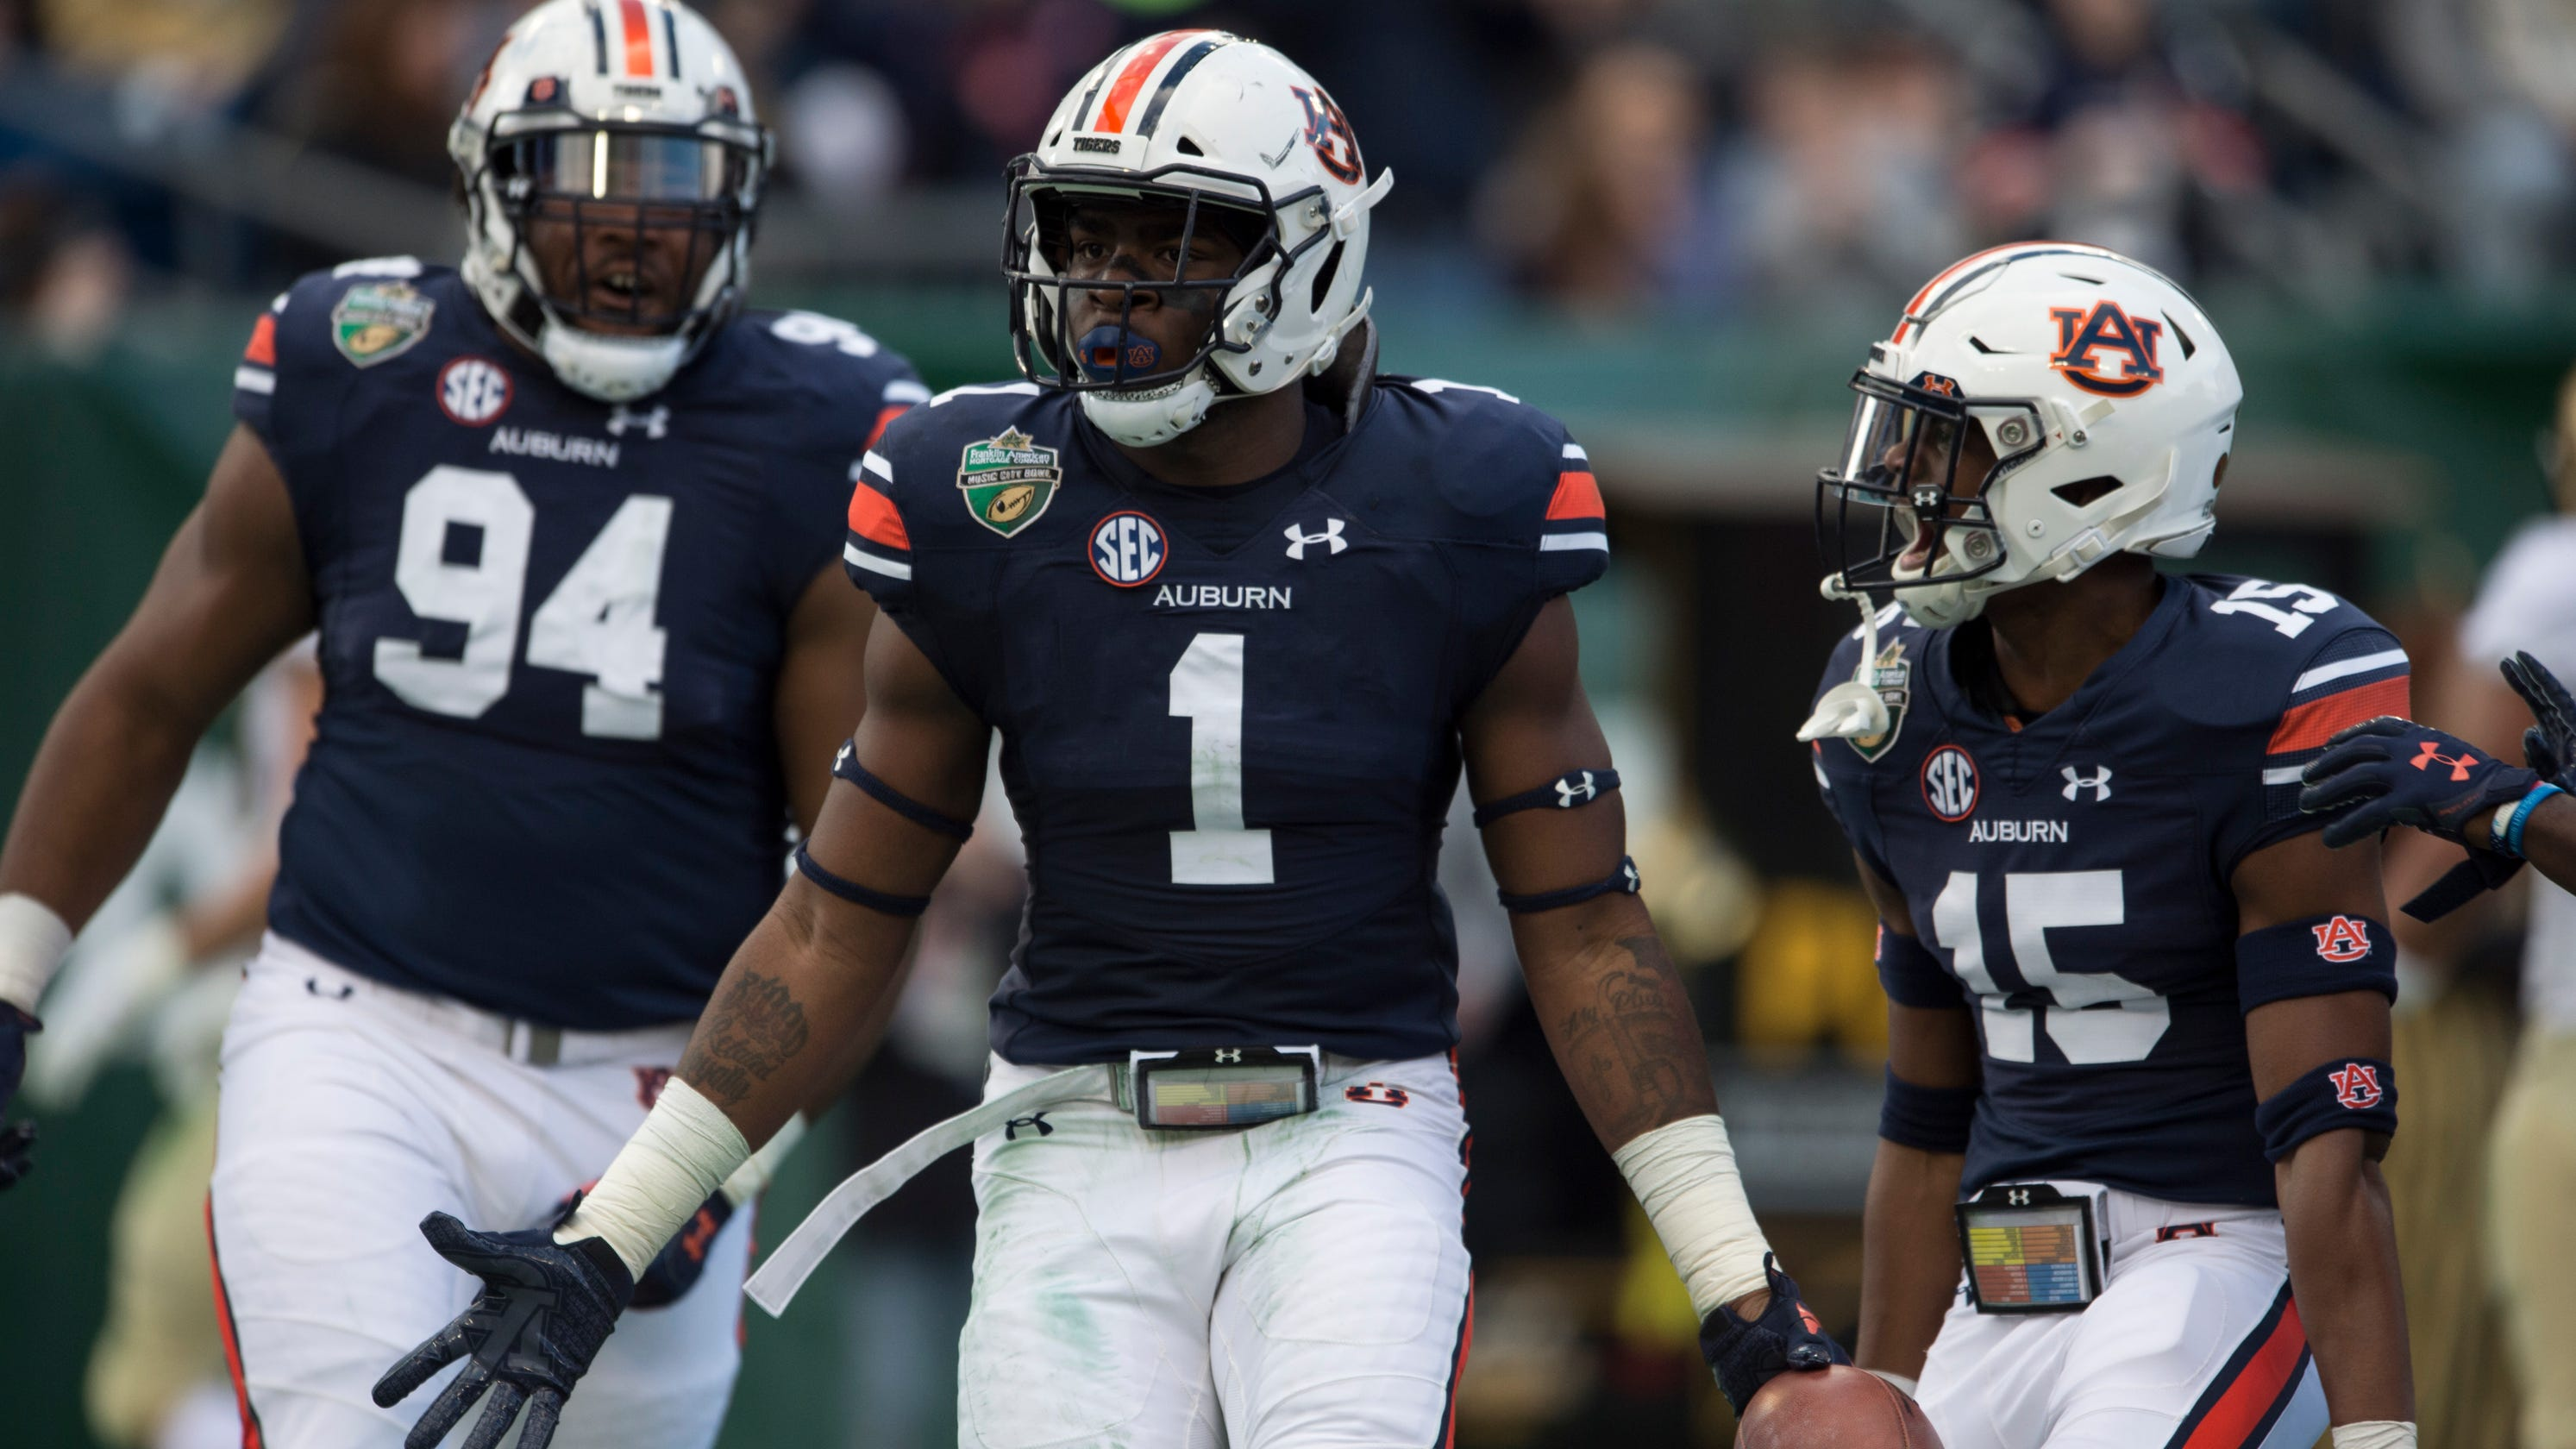 auburn defense that dominated purdue could lose half its starters